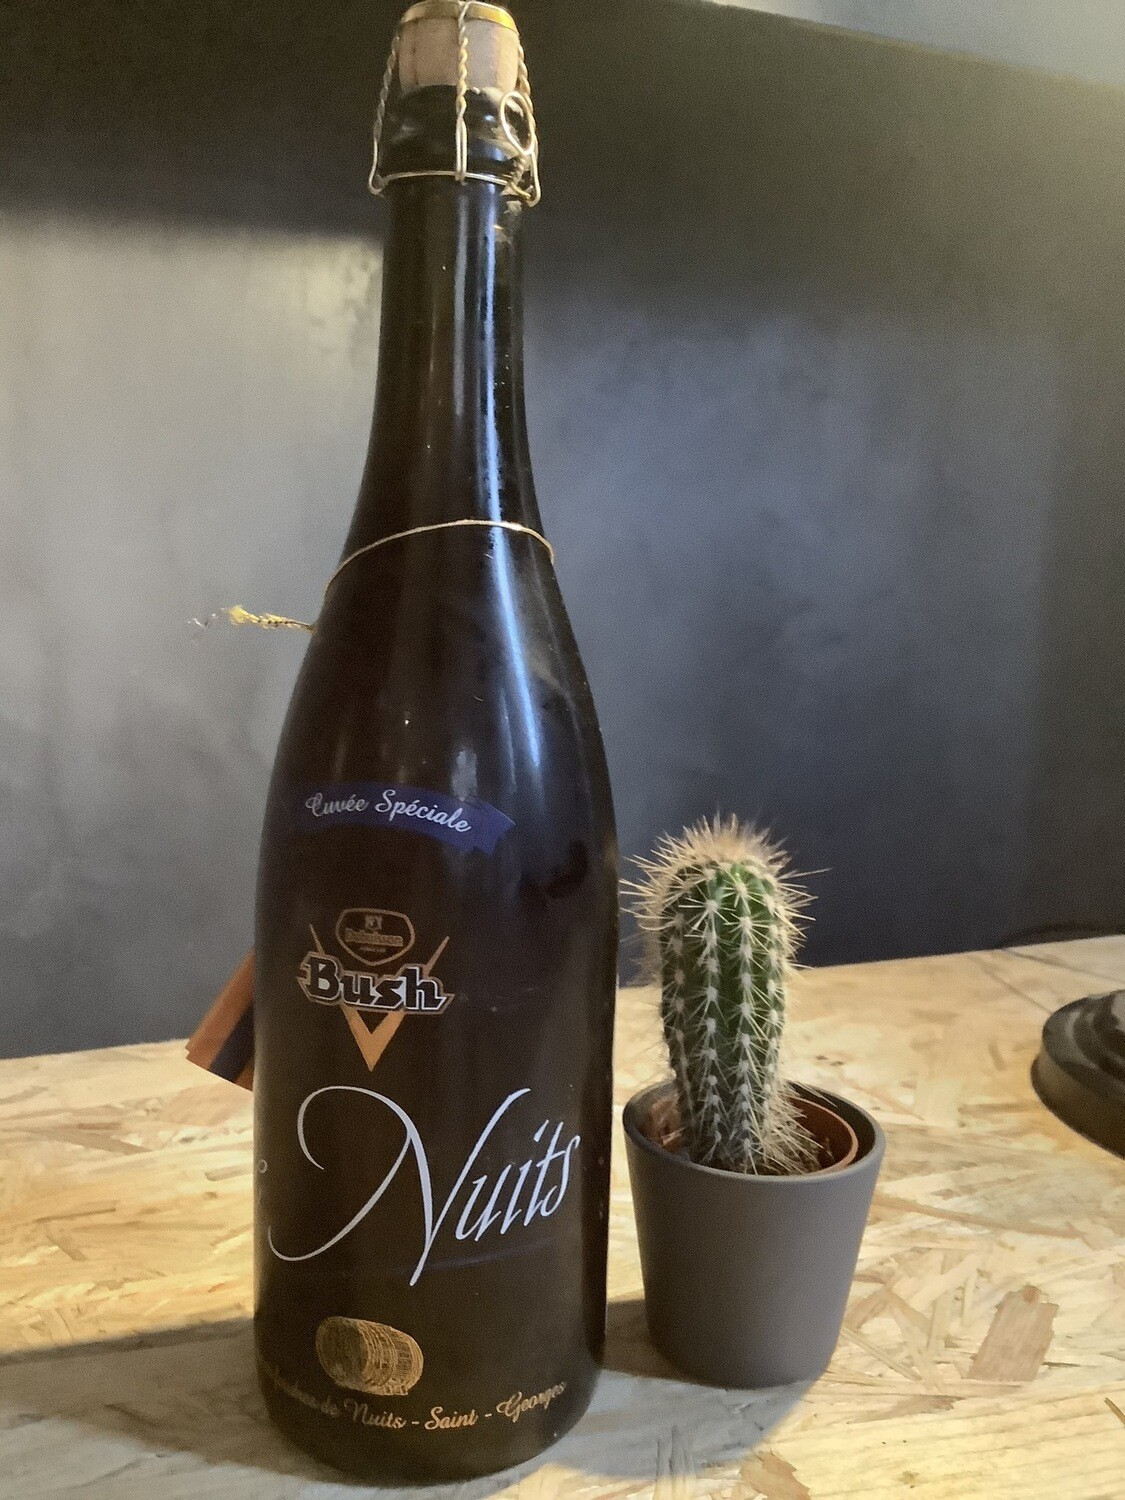 Bush de nuit - 13% - 75cl